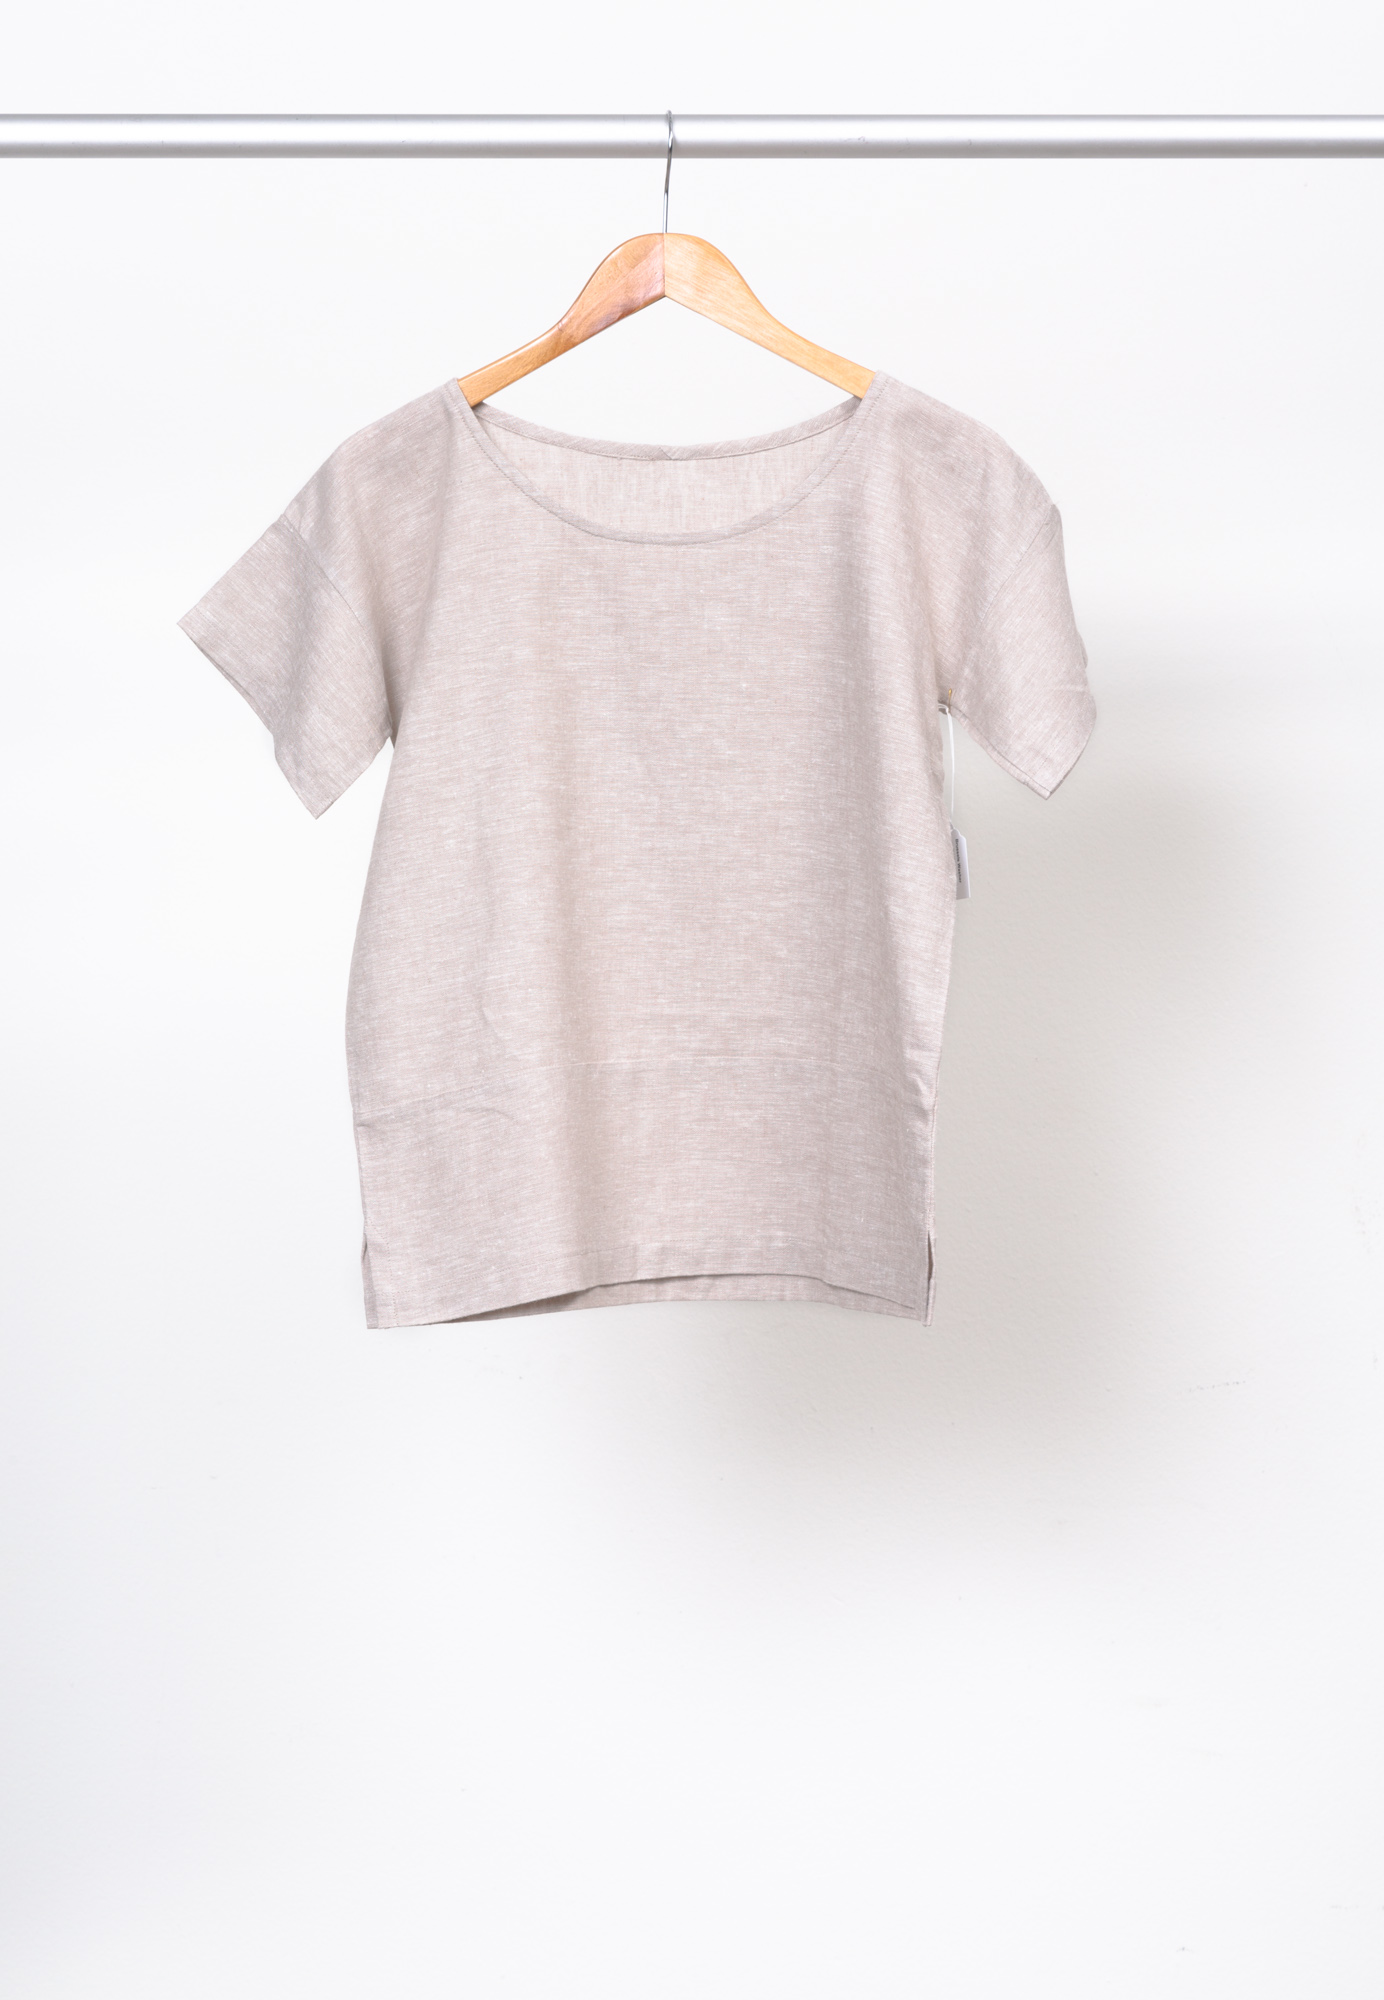 BOXY TEE   BY   PURL SOHO ,  BRUSSELS WASHER YD